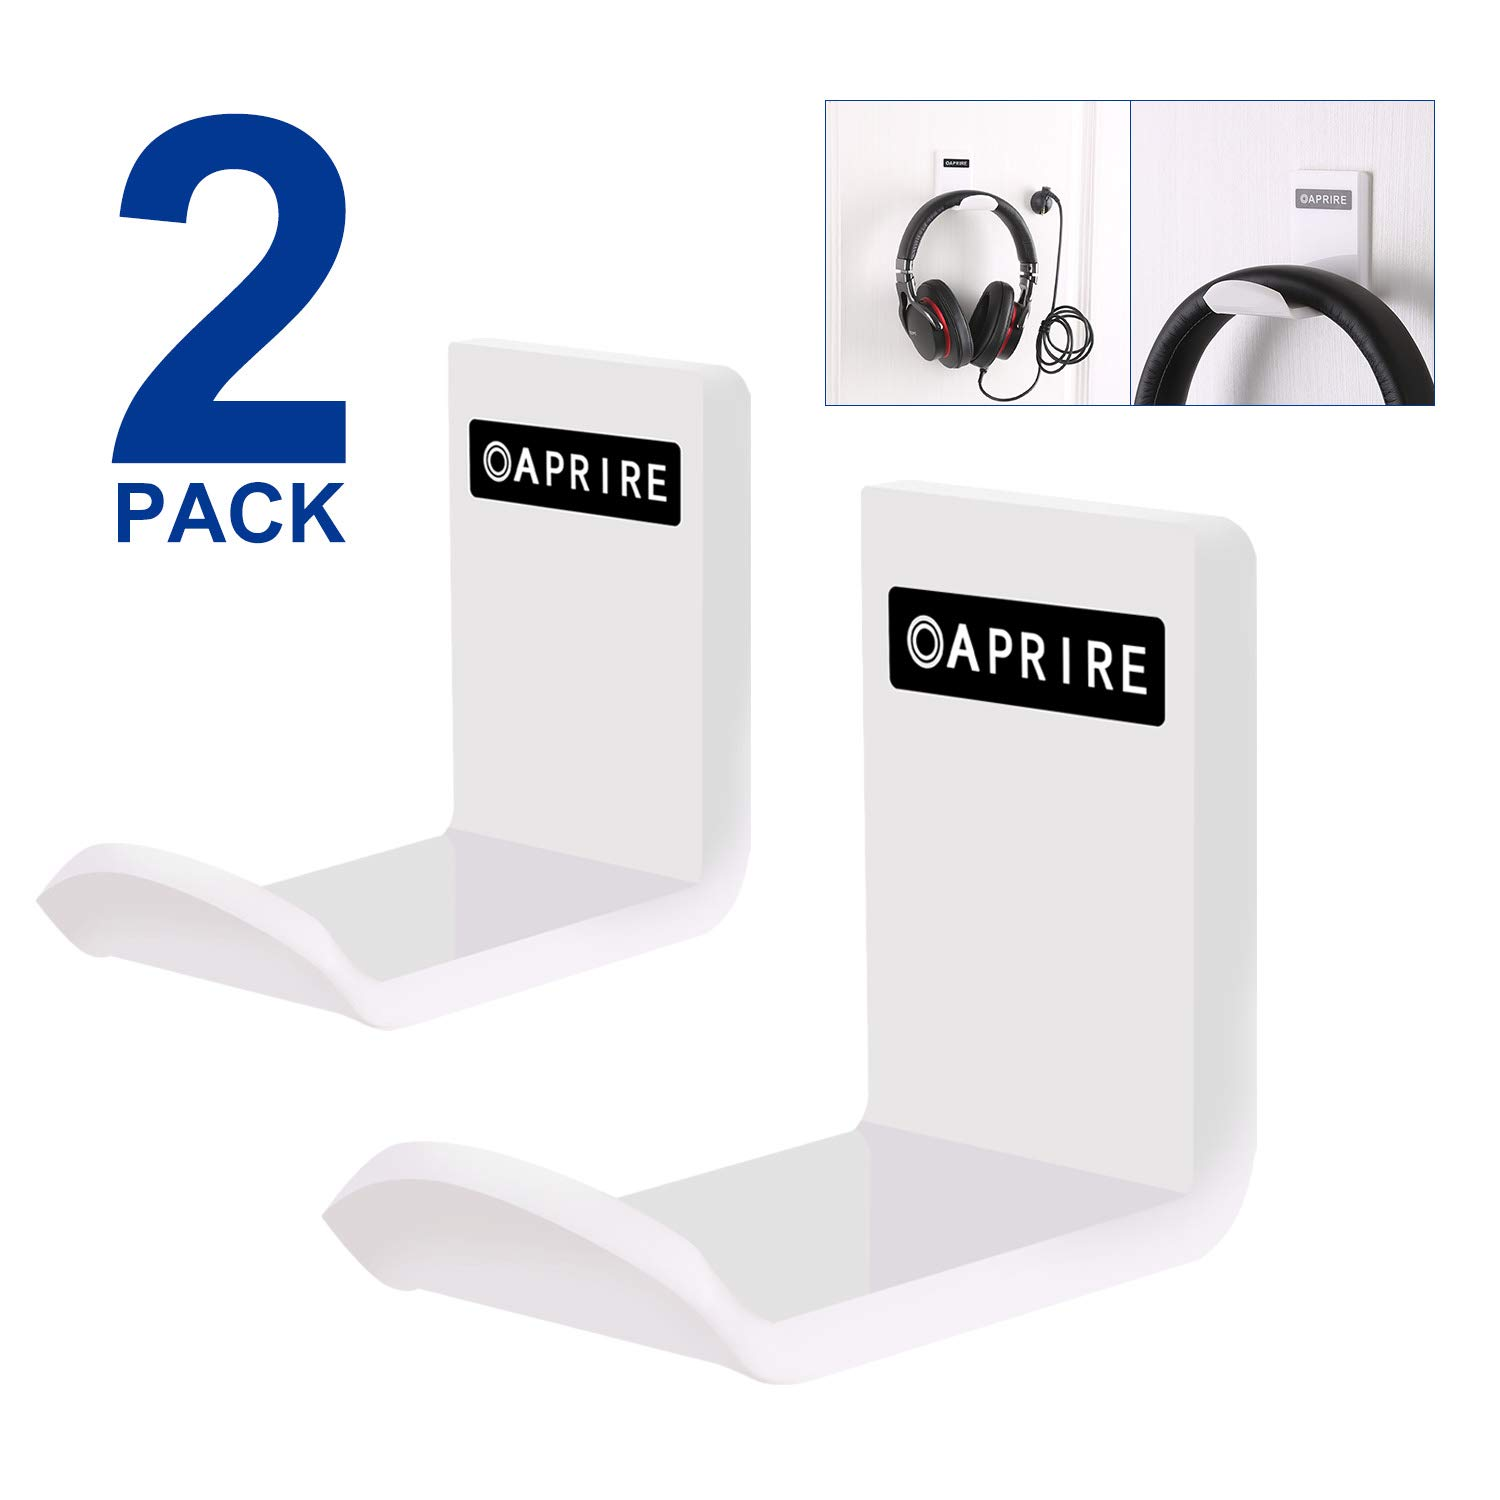 OAPRIRE Headphone Headset Hanger Wall Mount(2 Pack) - Save Desktop Space Headphone Stand - PC Gaming Universal Fit Headphone Holder with Cable Clip Organizer - No Screws, Stick on - White